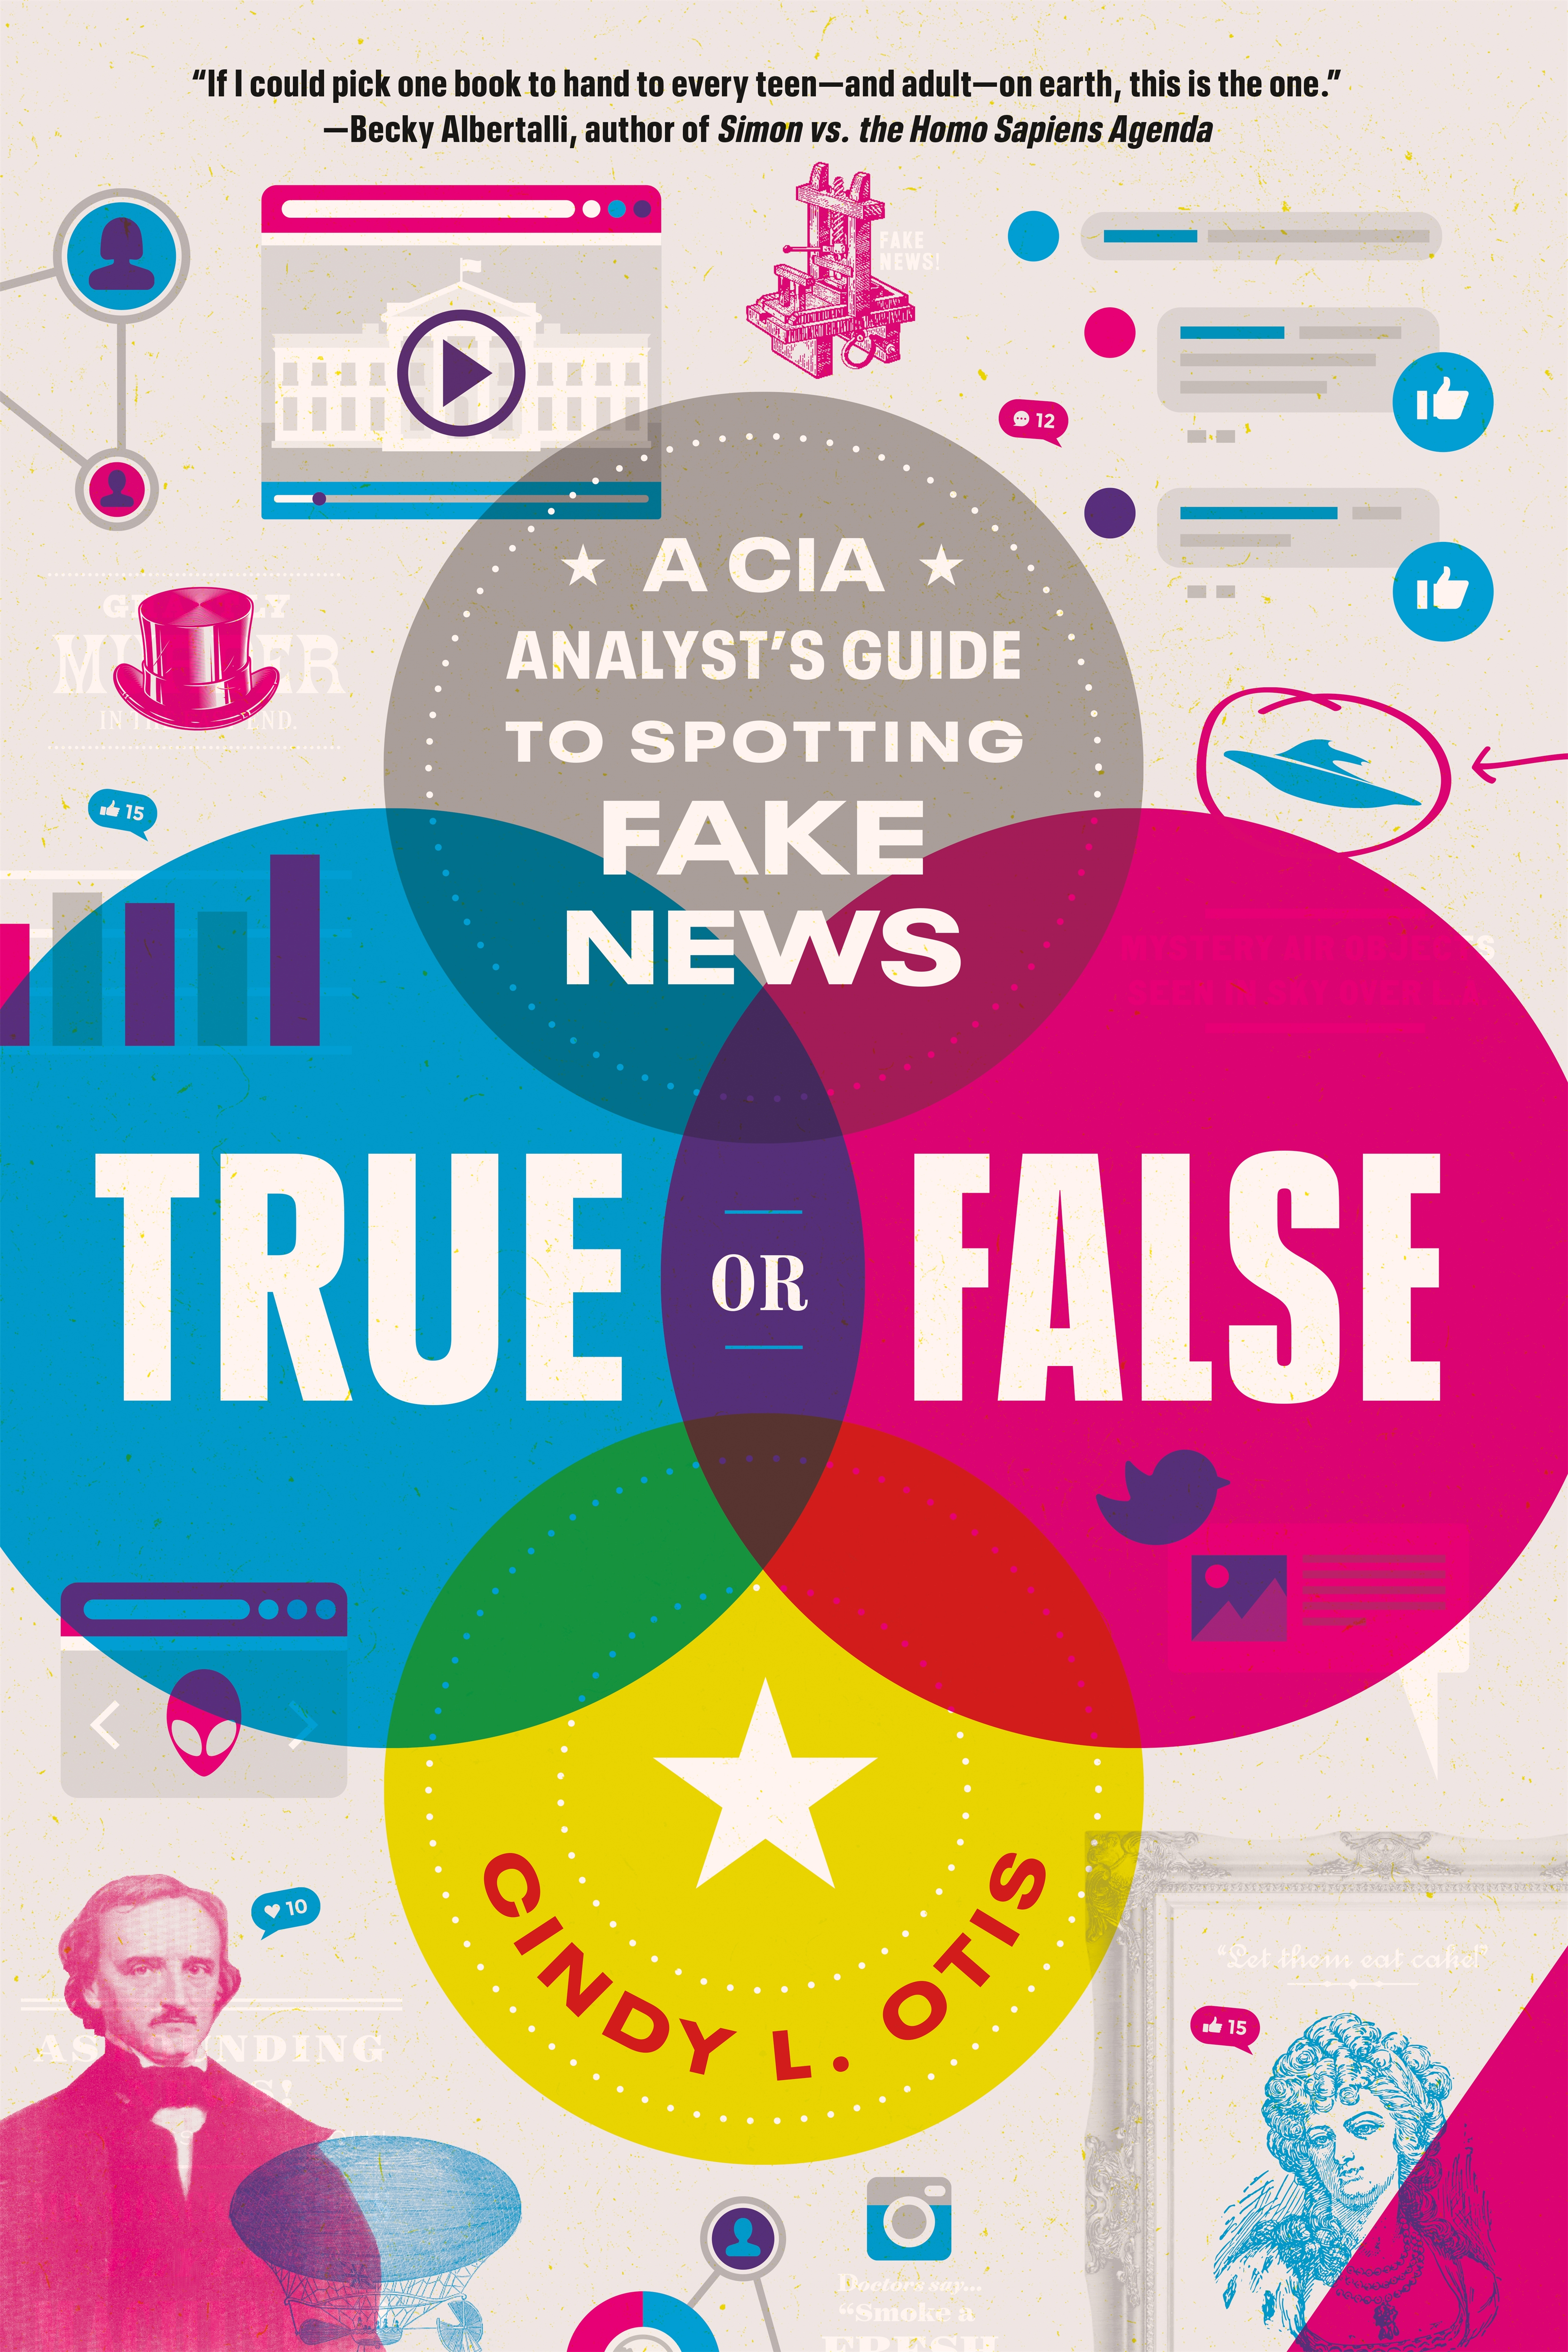 True or False A CIA Analyst's Guide to Spotting Fake News